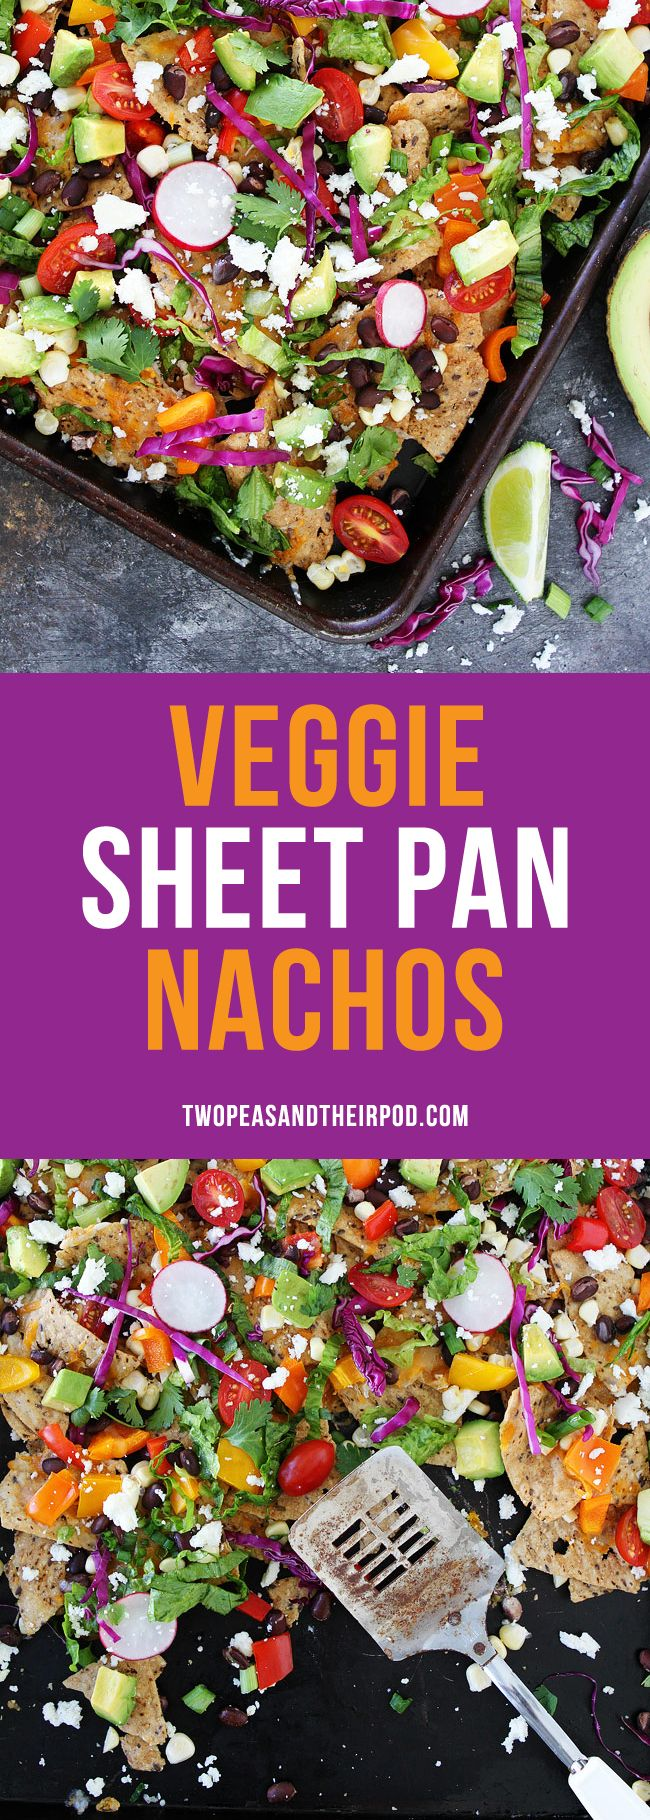 Veggie Sheet Pan Nachos These cheesy gluten free and vegetarian nachos are loaded with all of your favorite veggies! They are perfect for parties, game day, or any day!: